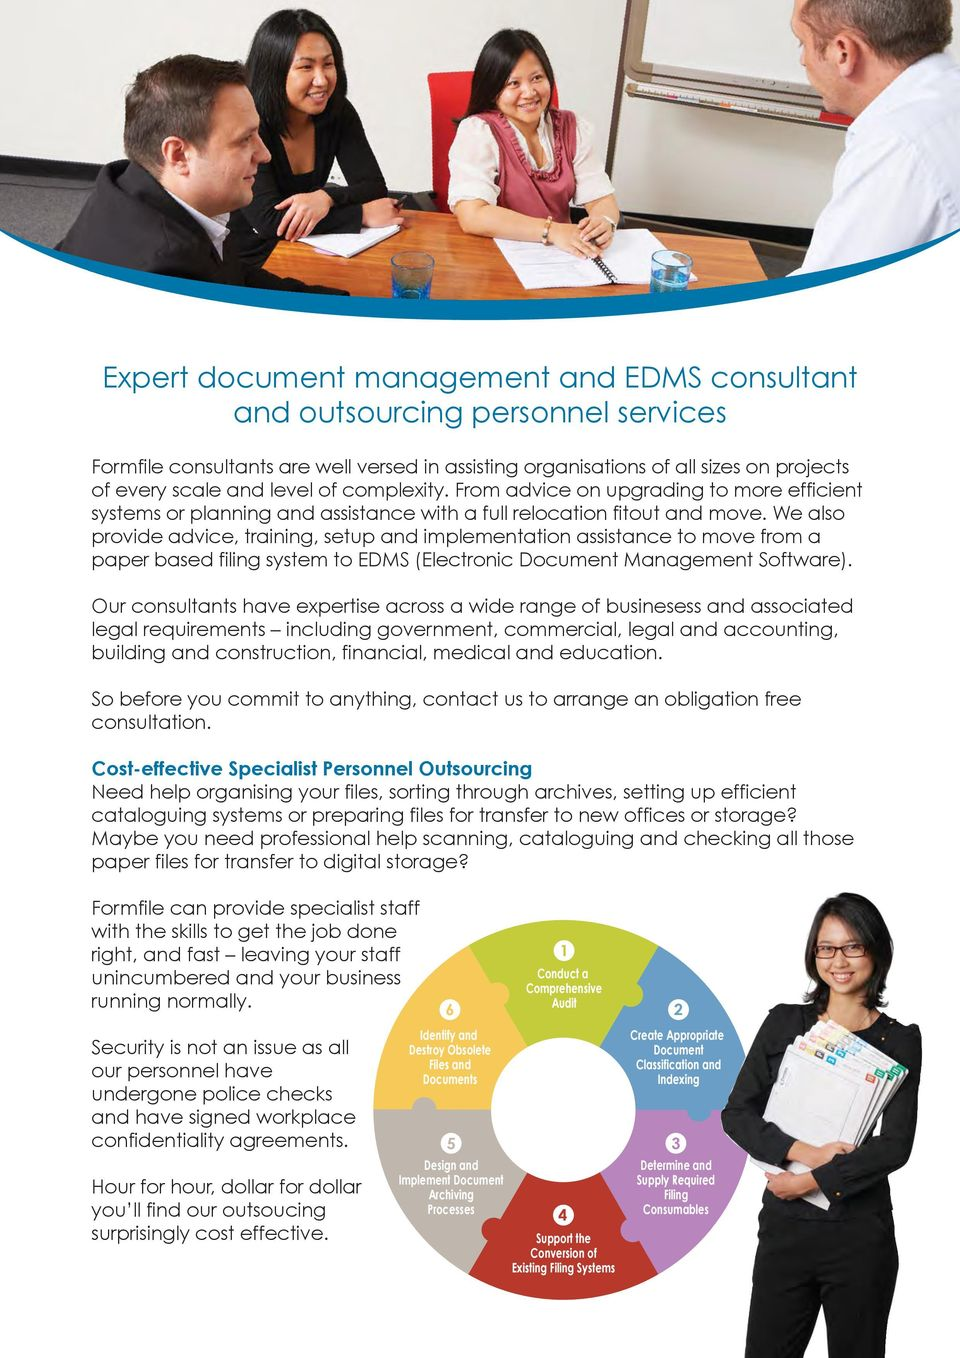 We also provide advice, training, setup and implementation assistance to move from a paper based filing system to EDMS (Electronic Document Management Software).